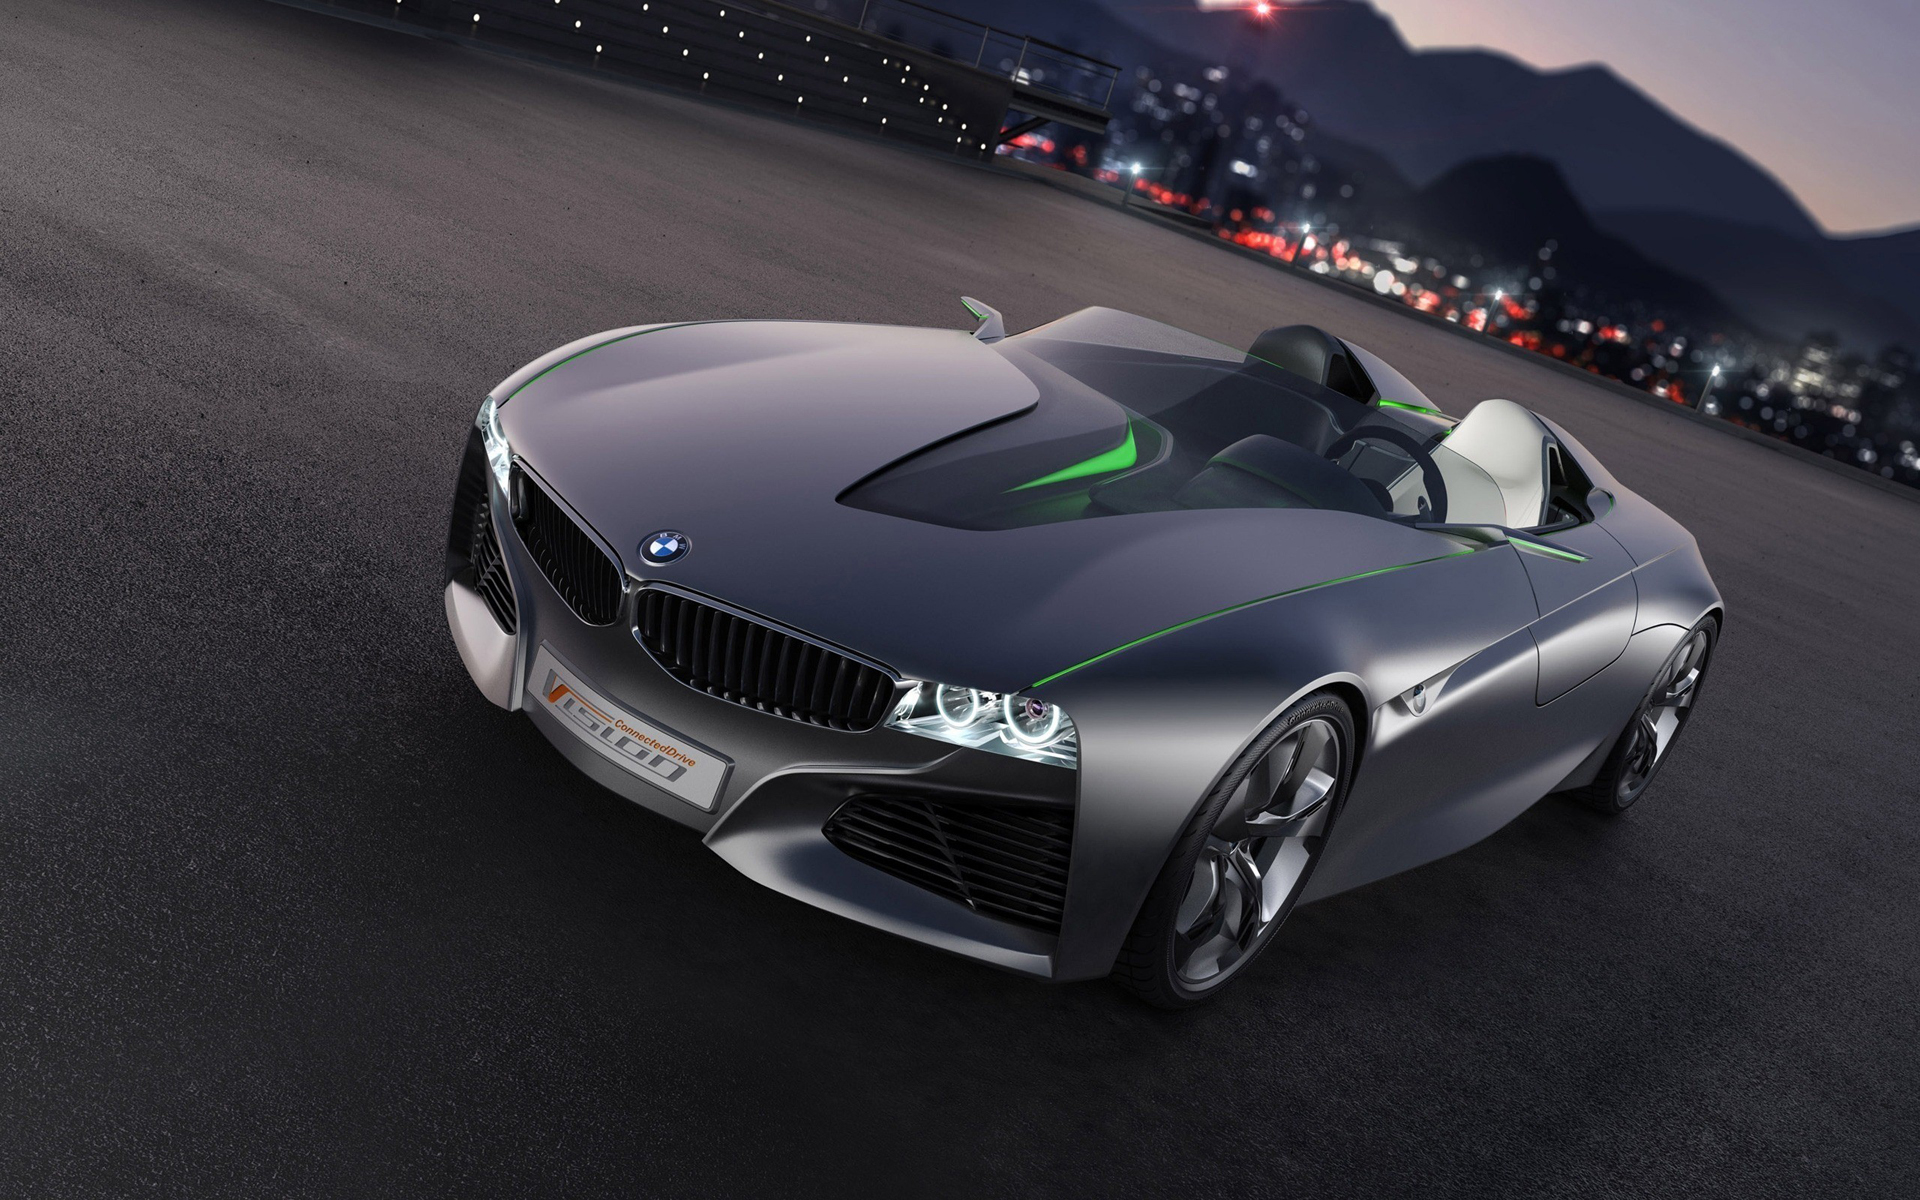 BMW vision connecteddrive, фото автомобиля